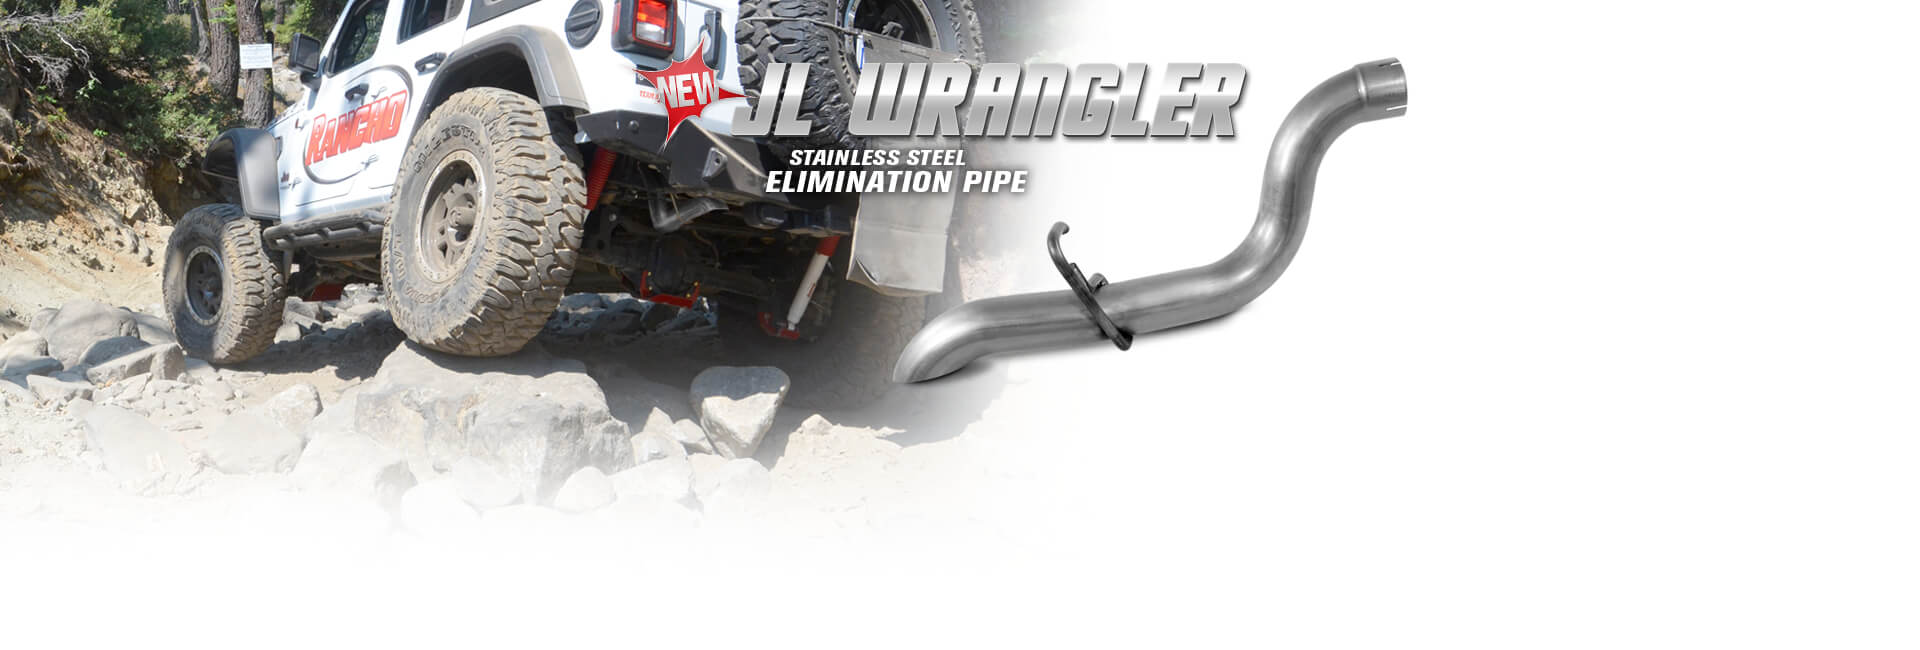 Exhaust Systems, Cat-Back Exhaust Systems & Axle-Back